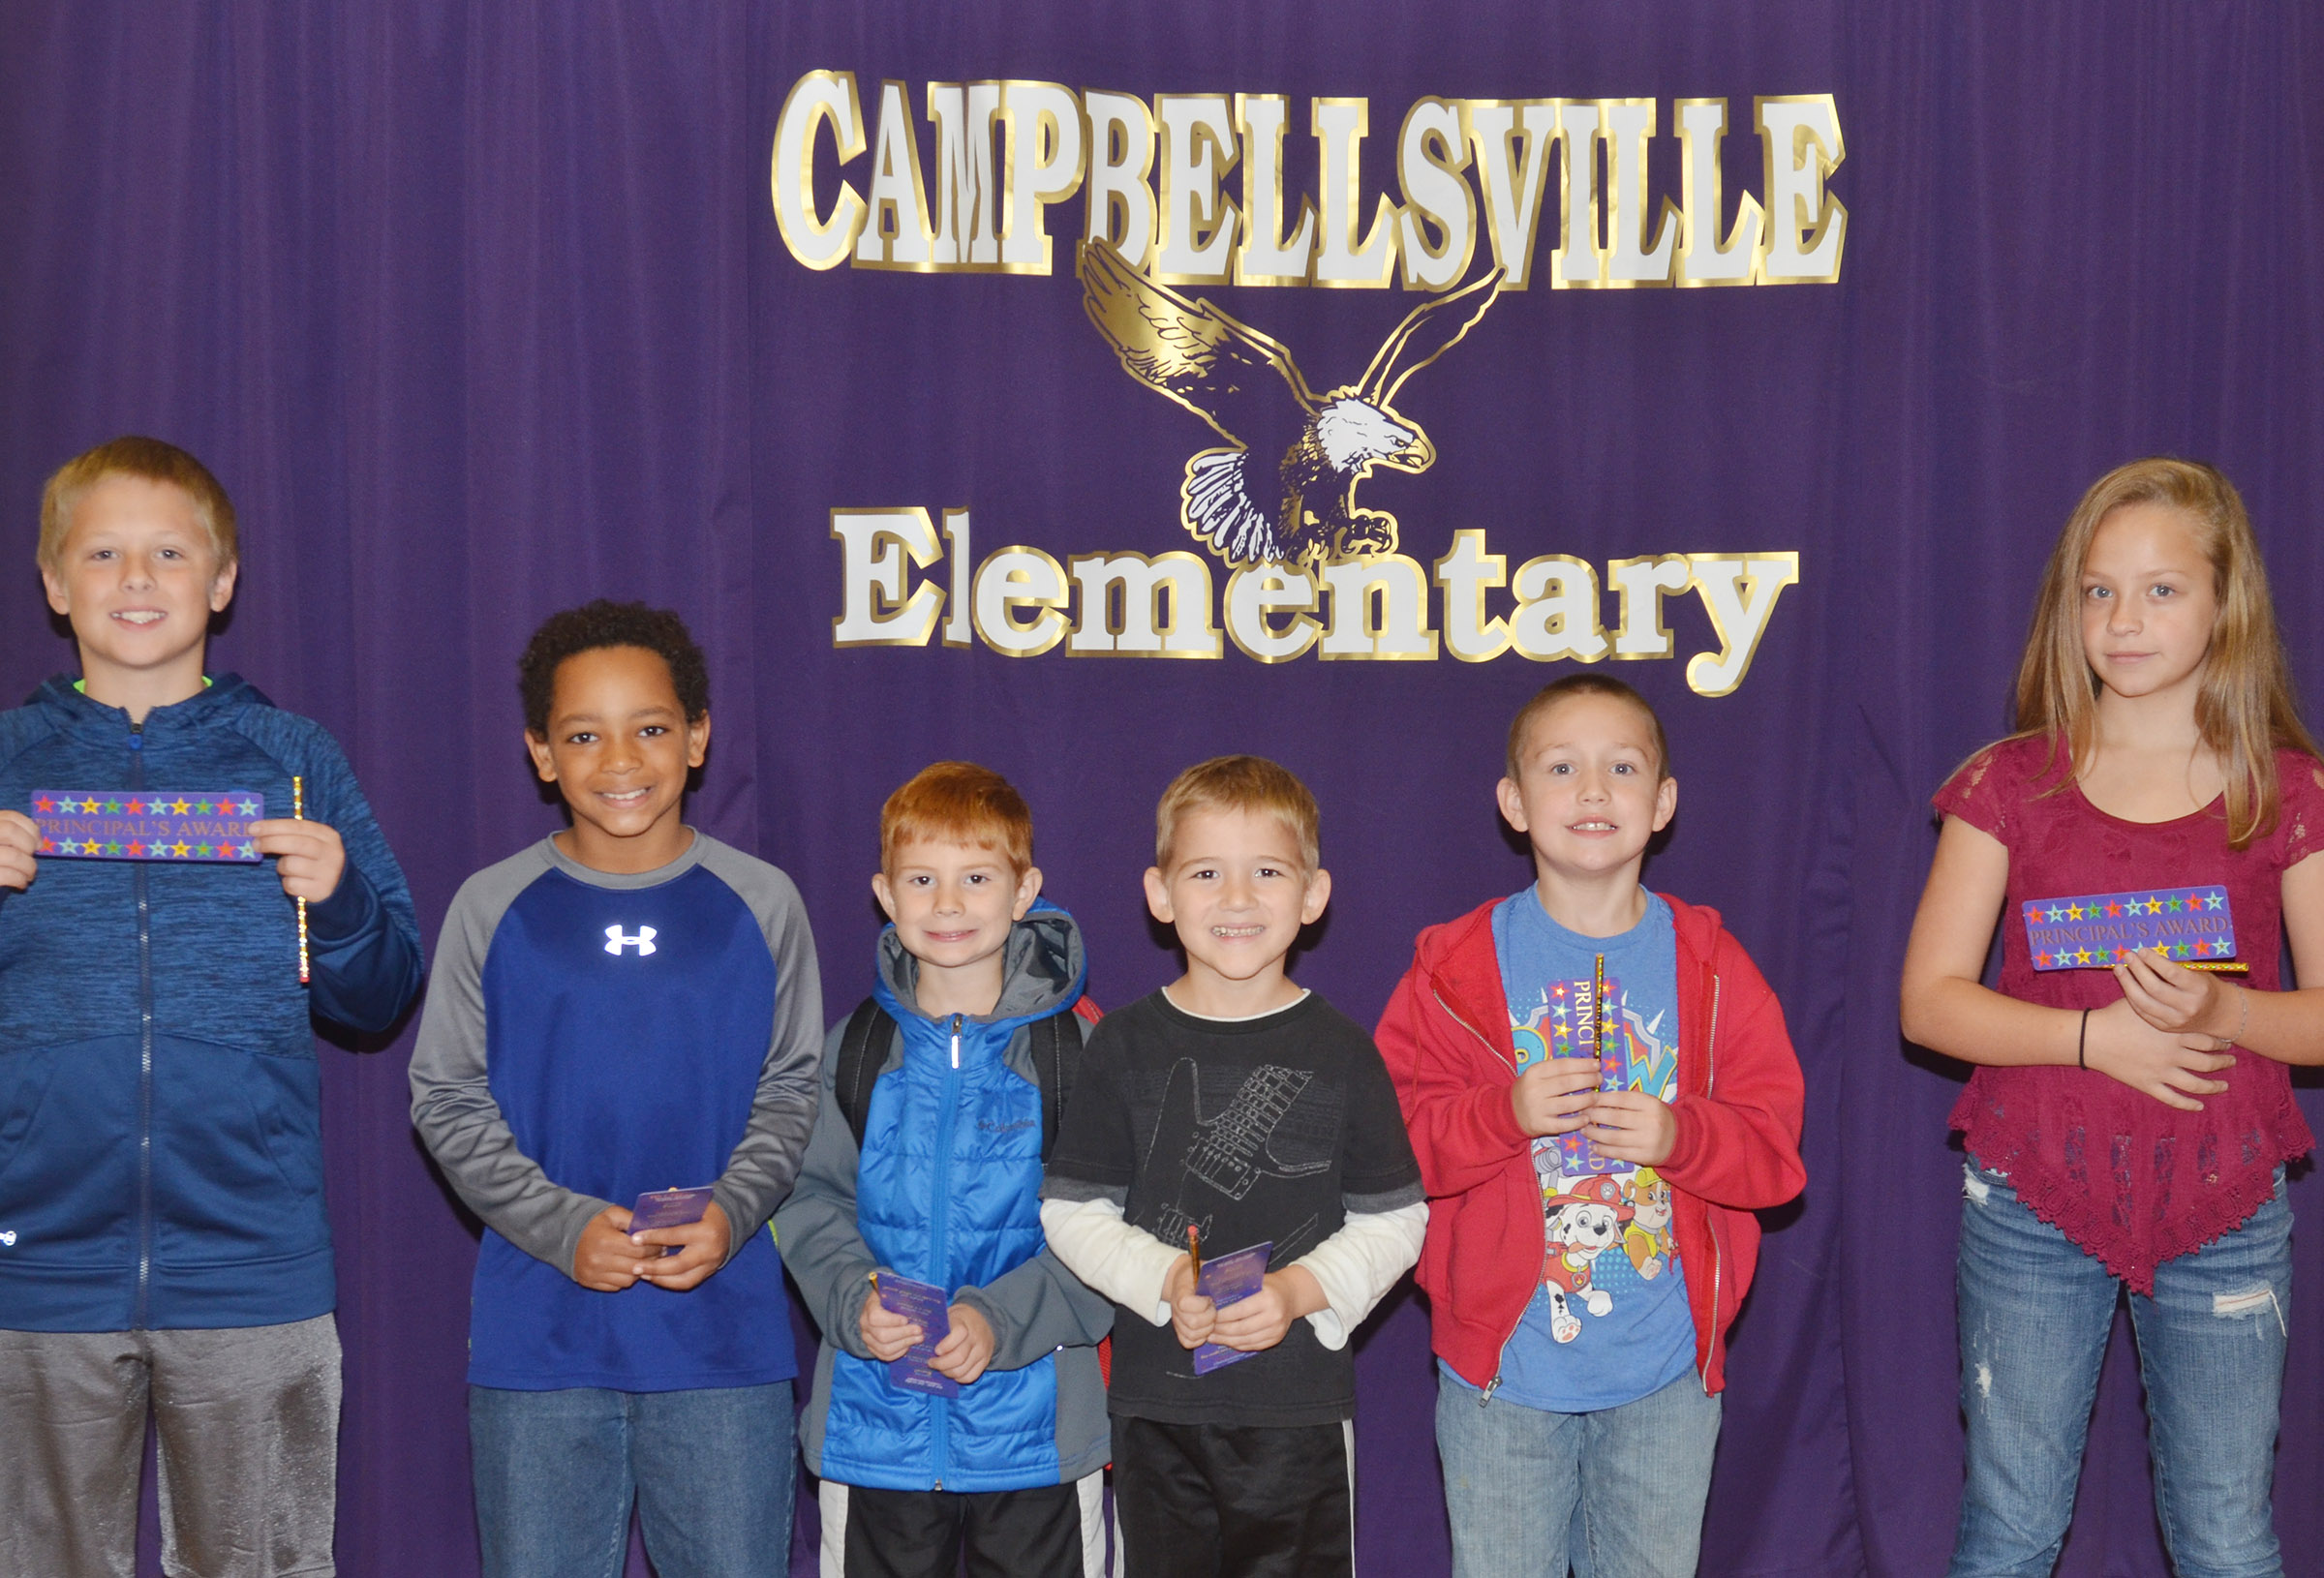 From left are third-grader Evan Lockridge, fourth-grader Jalen Embry, kindergartener Kennon Dotson, first-grader Mason Edwards, second-grader Jacob Golden and fifth-grader Deanna Reardon.